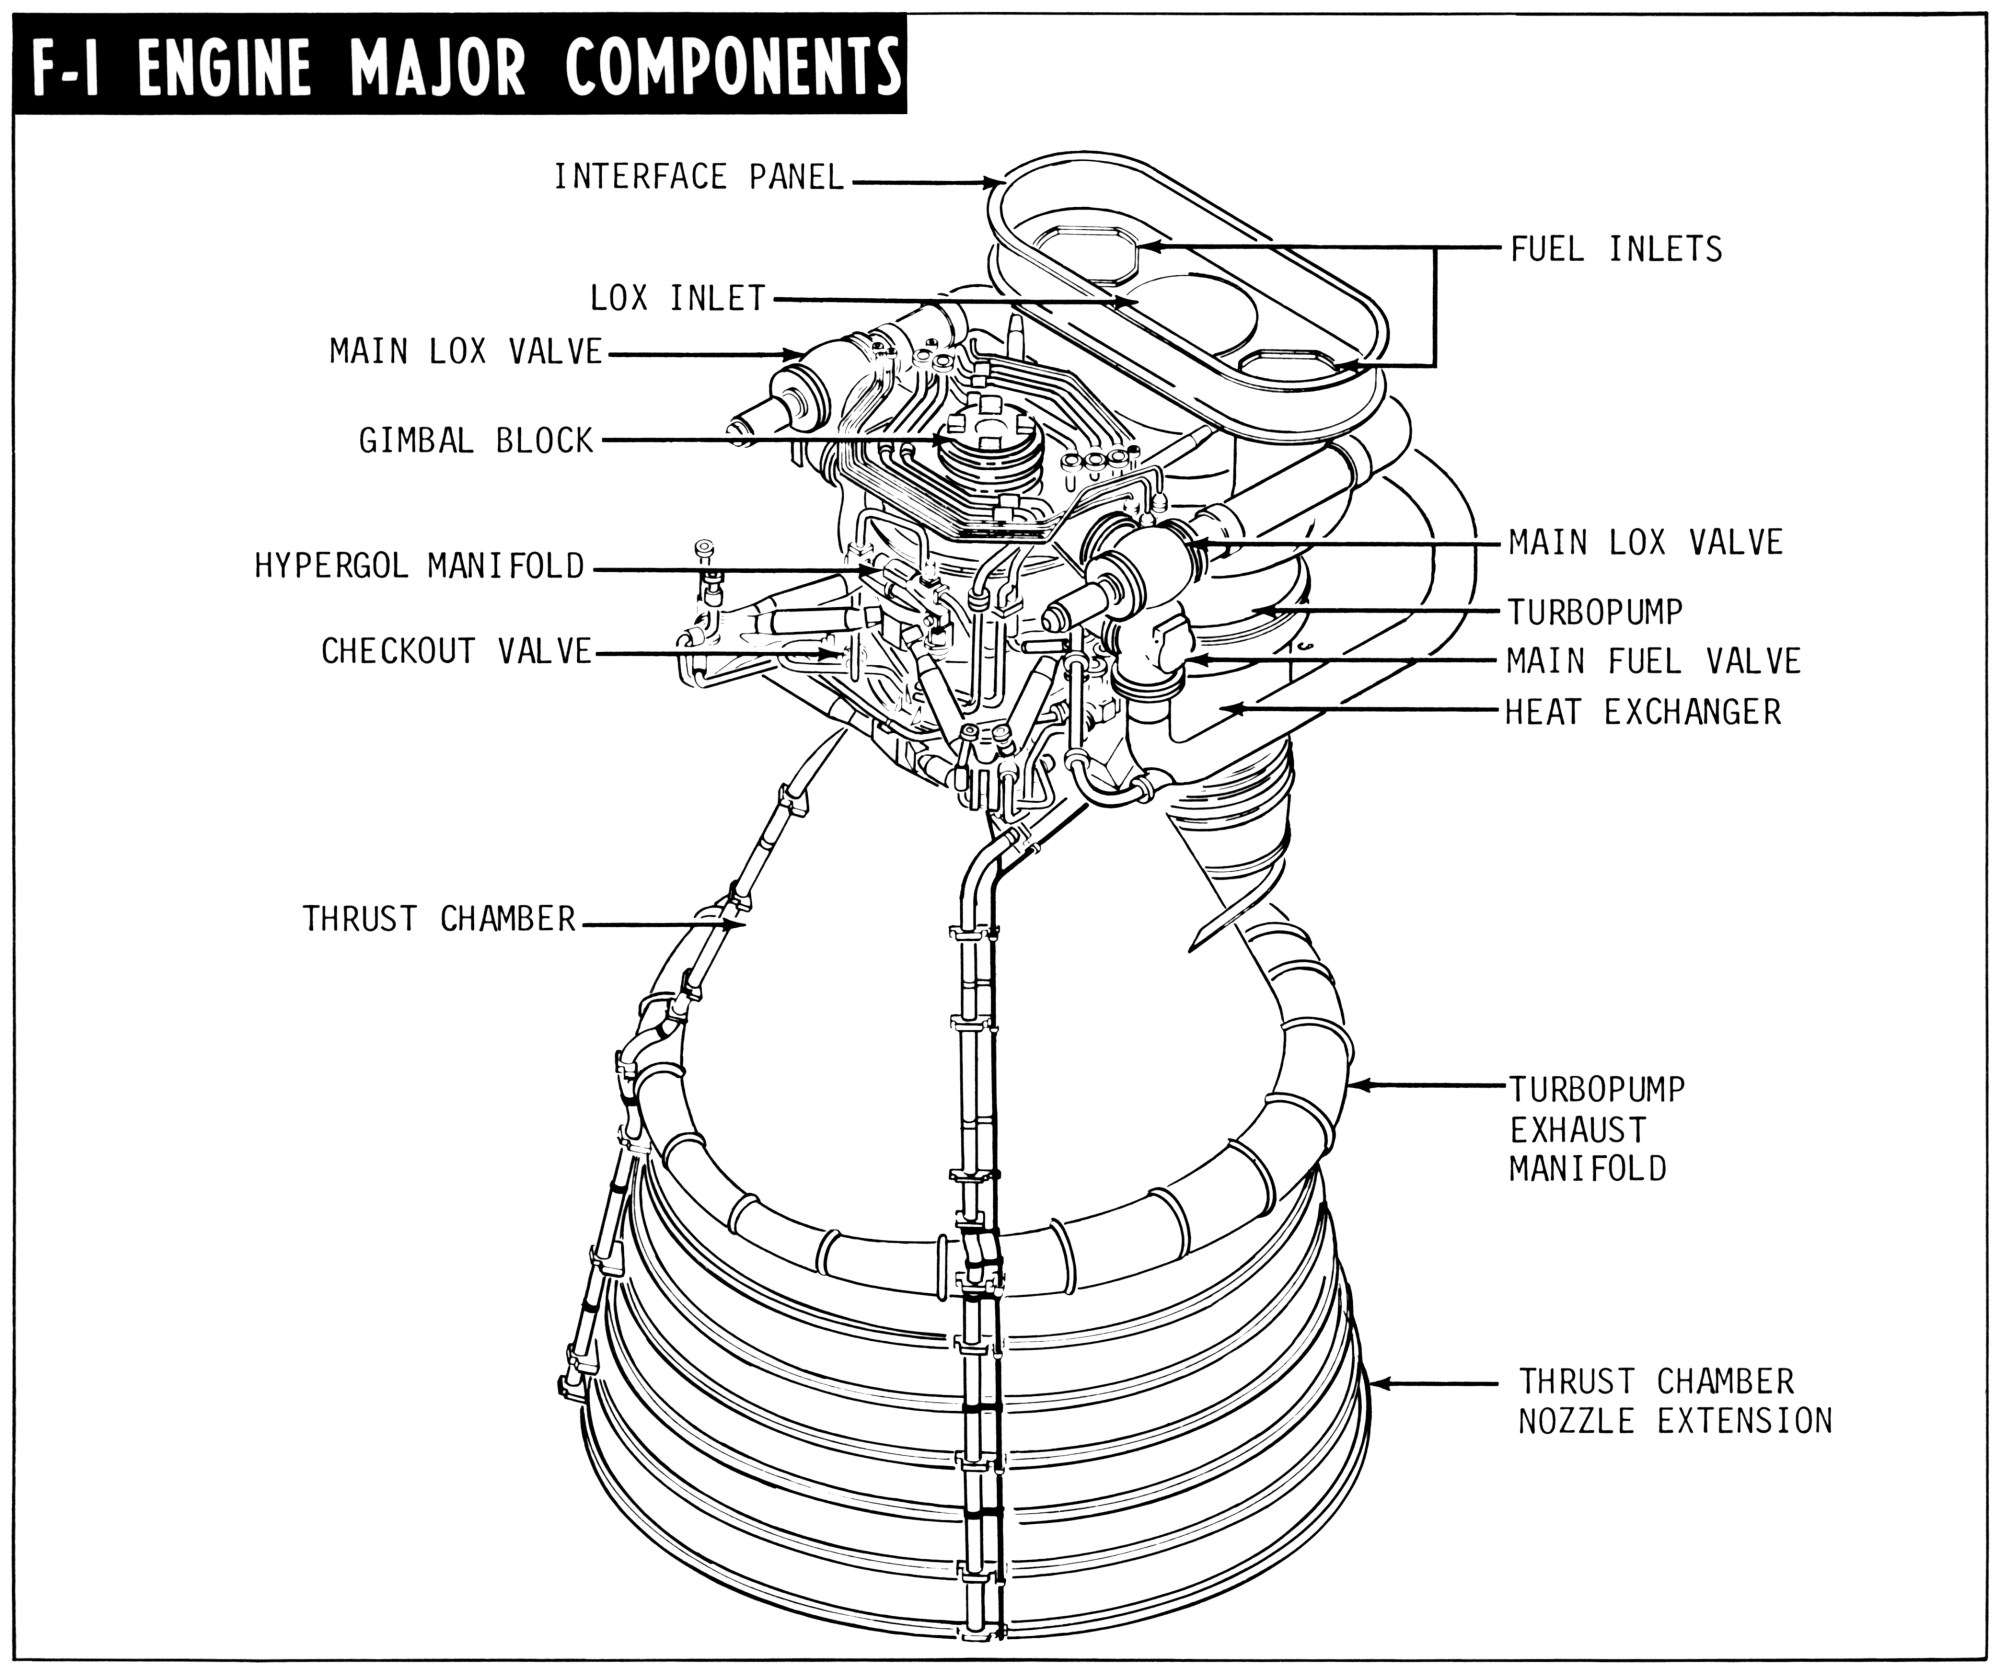 hight resolution of f 1 rocket engine diagram with callouts f 1 engine major components